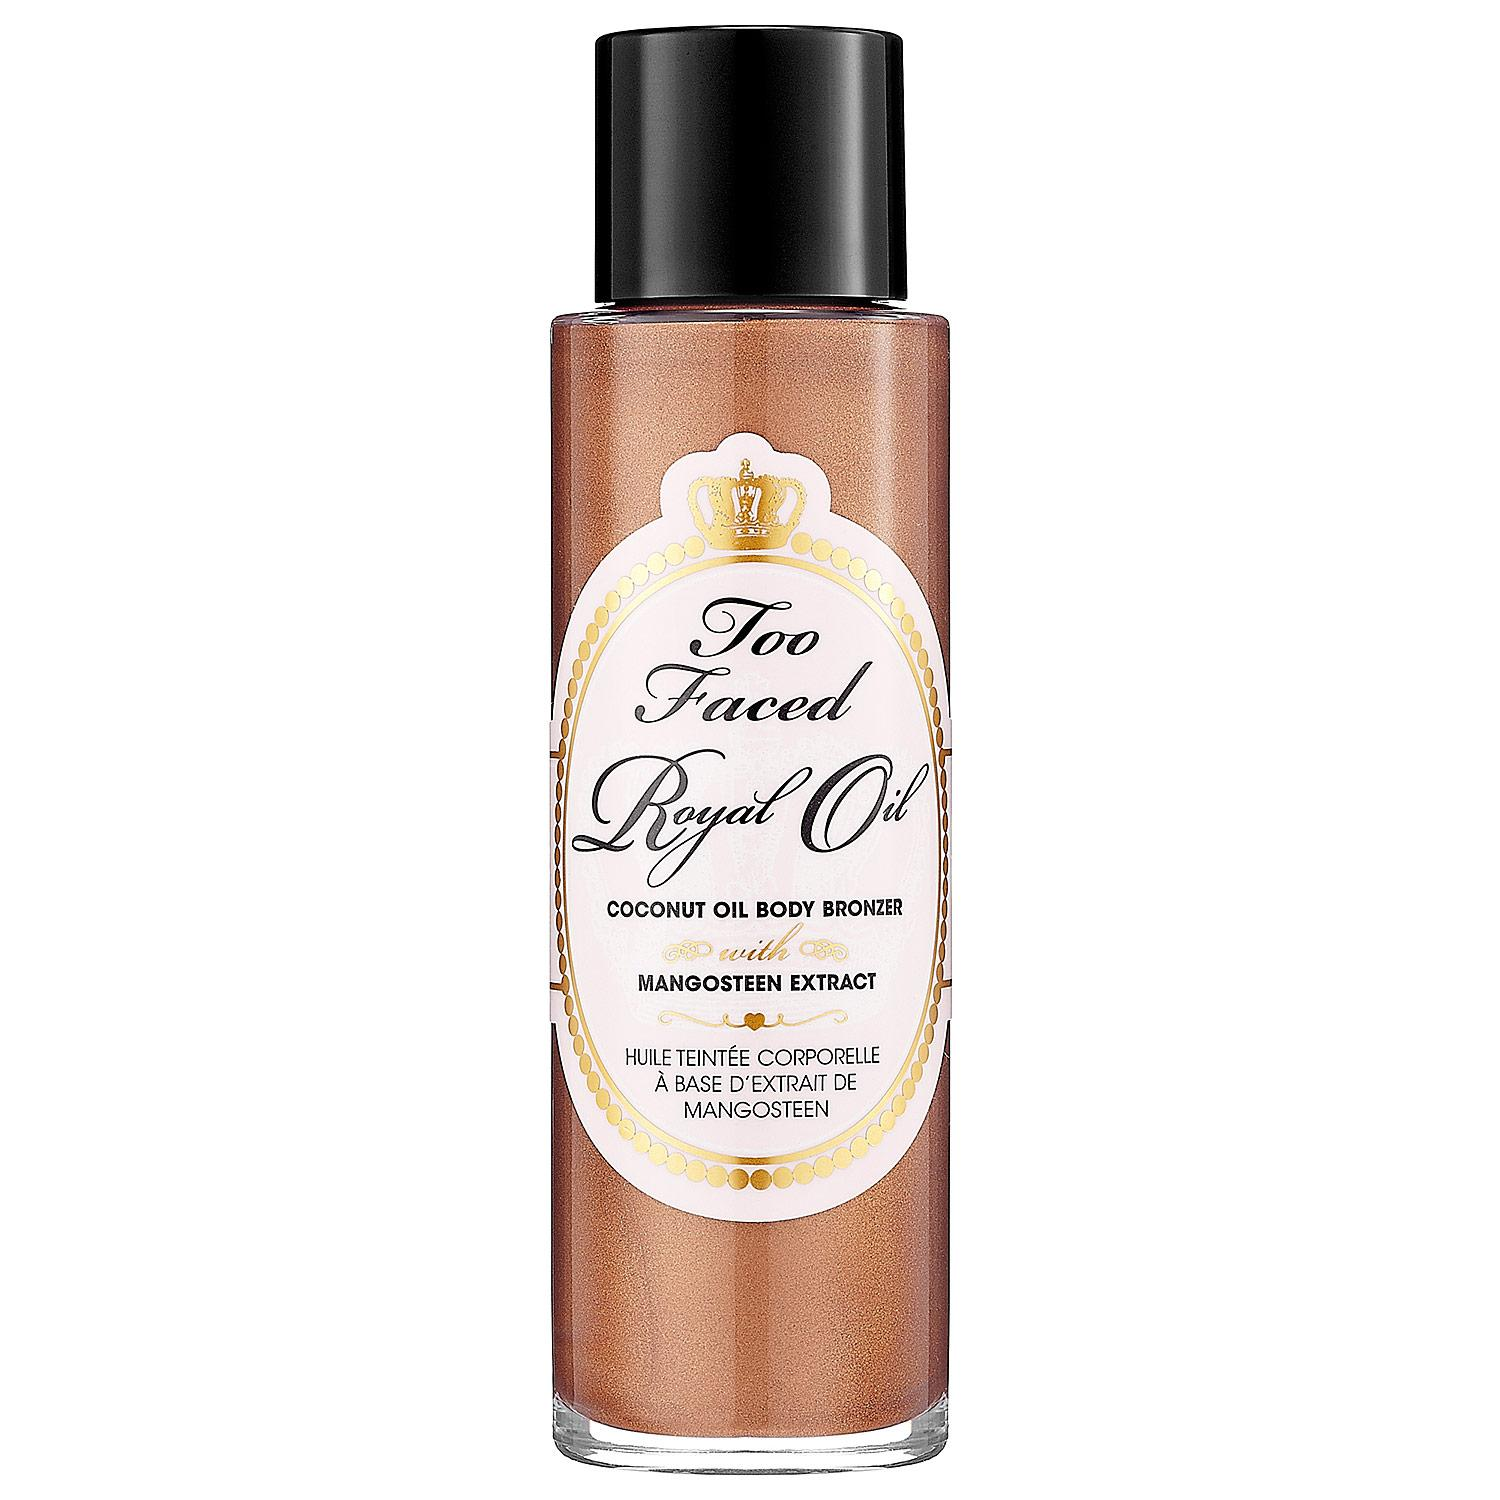 Royal Oil Coconut Oil Body Bronzer With Mangosteen Extract